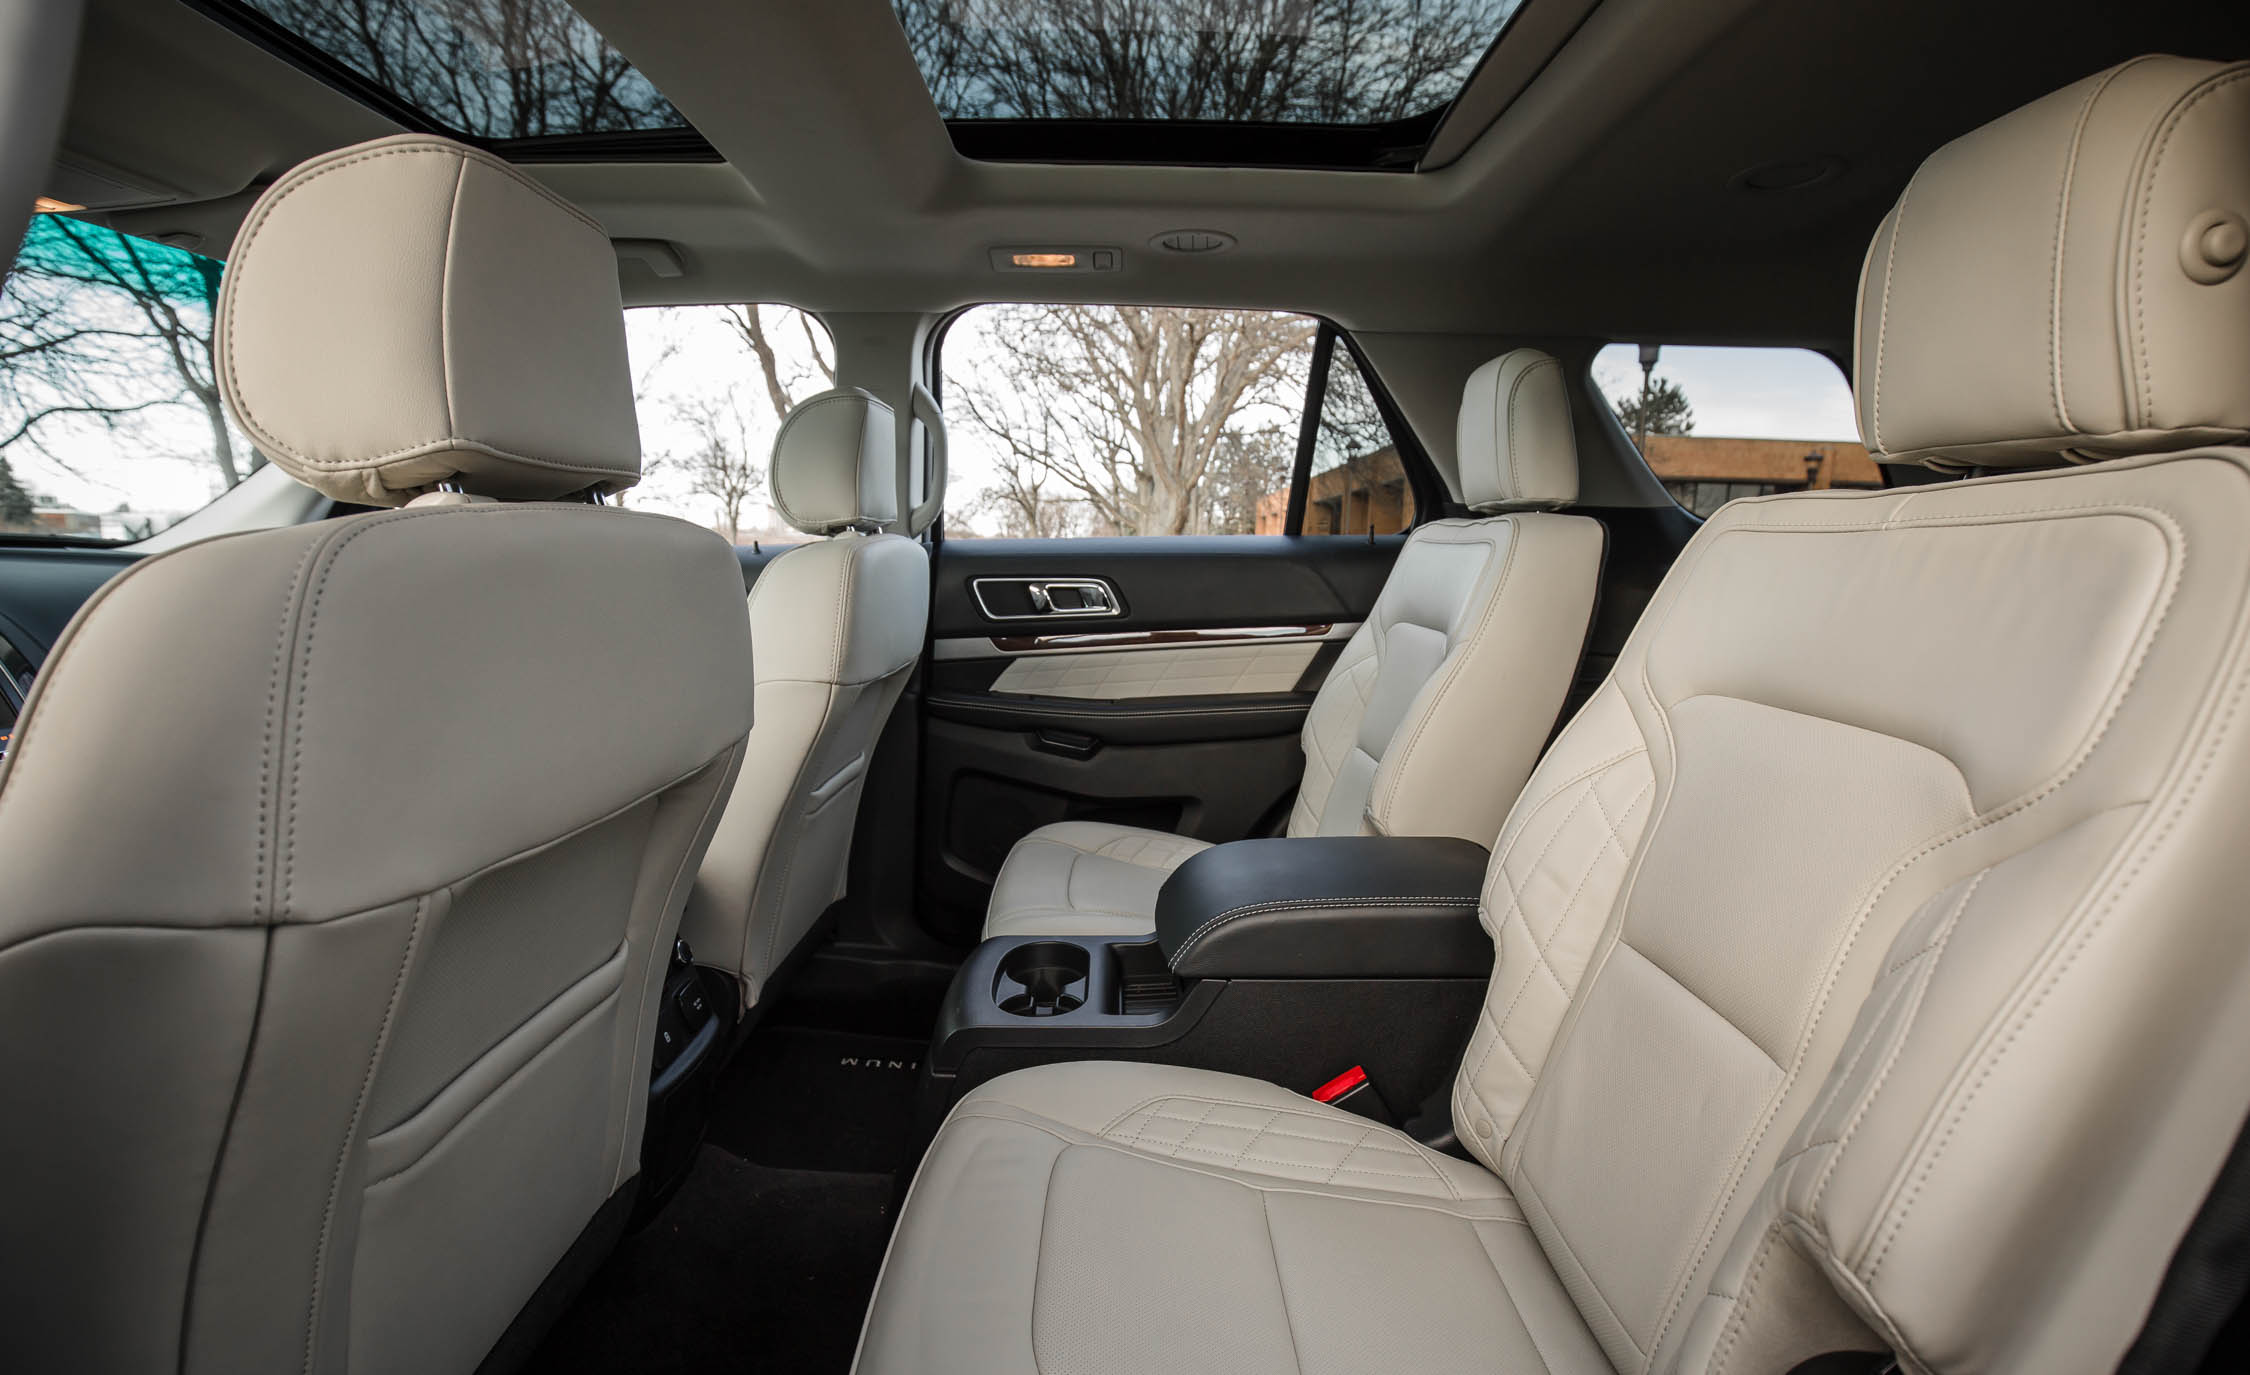 2018 Ford Explorer Xlt Interior 2017 2018 2019 Ford Price Release Date Reviews